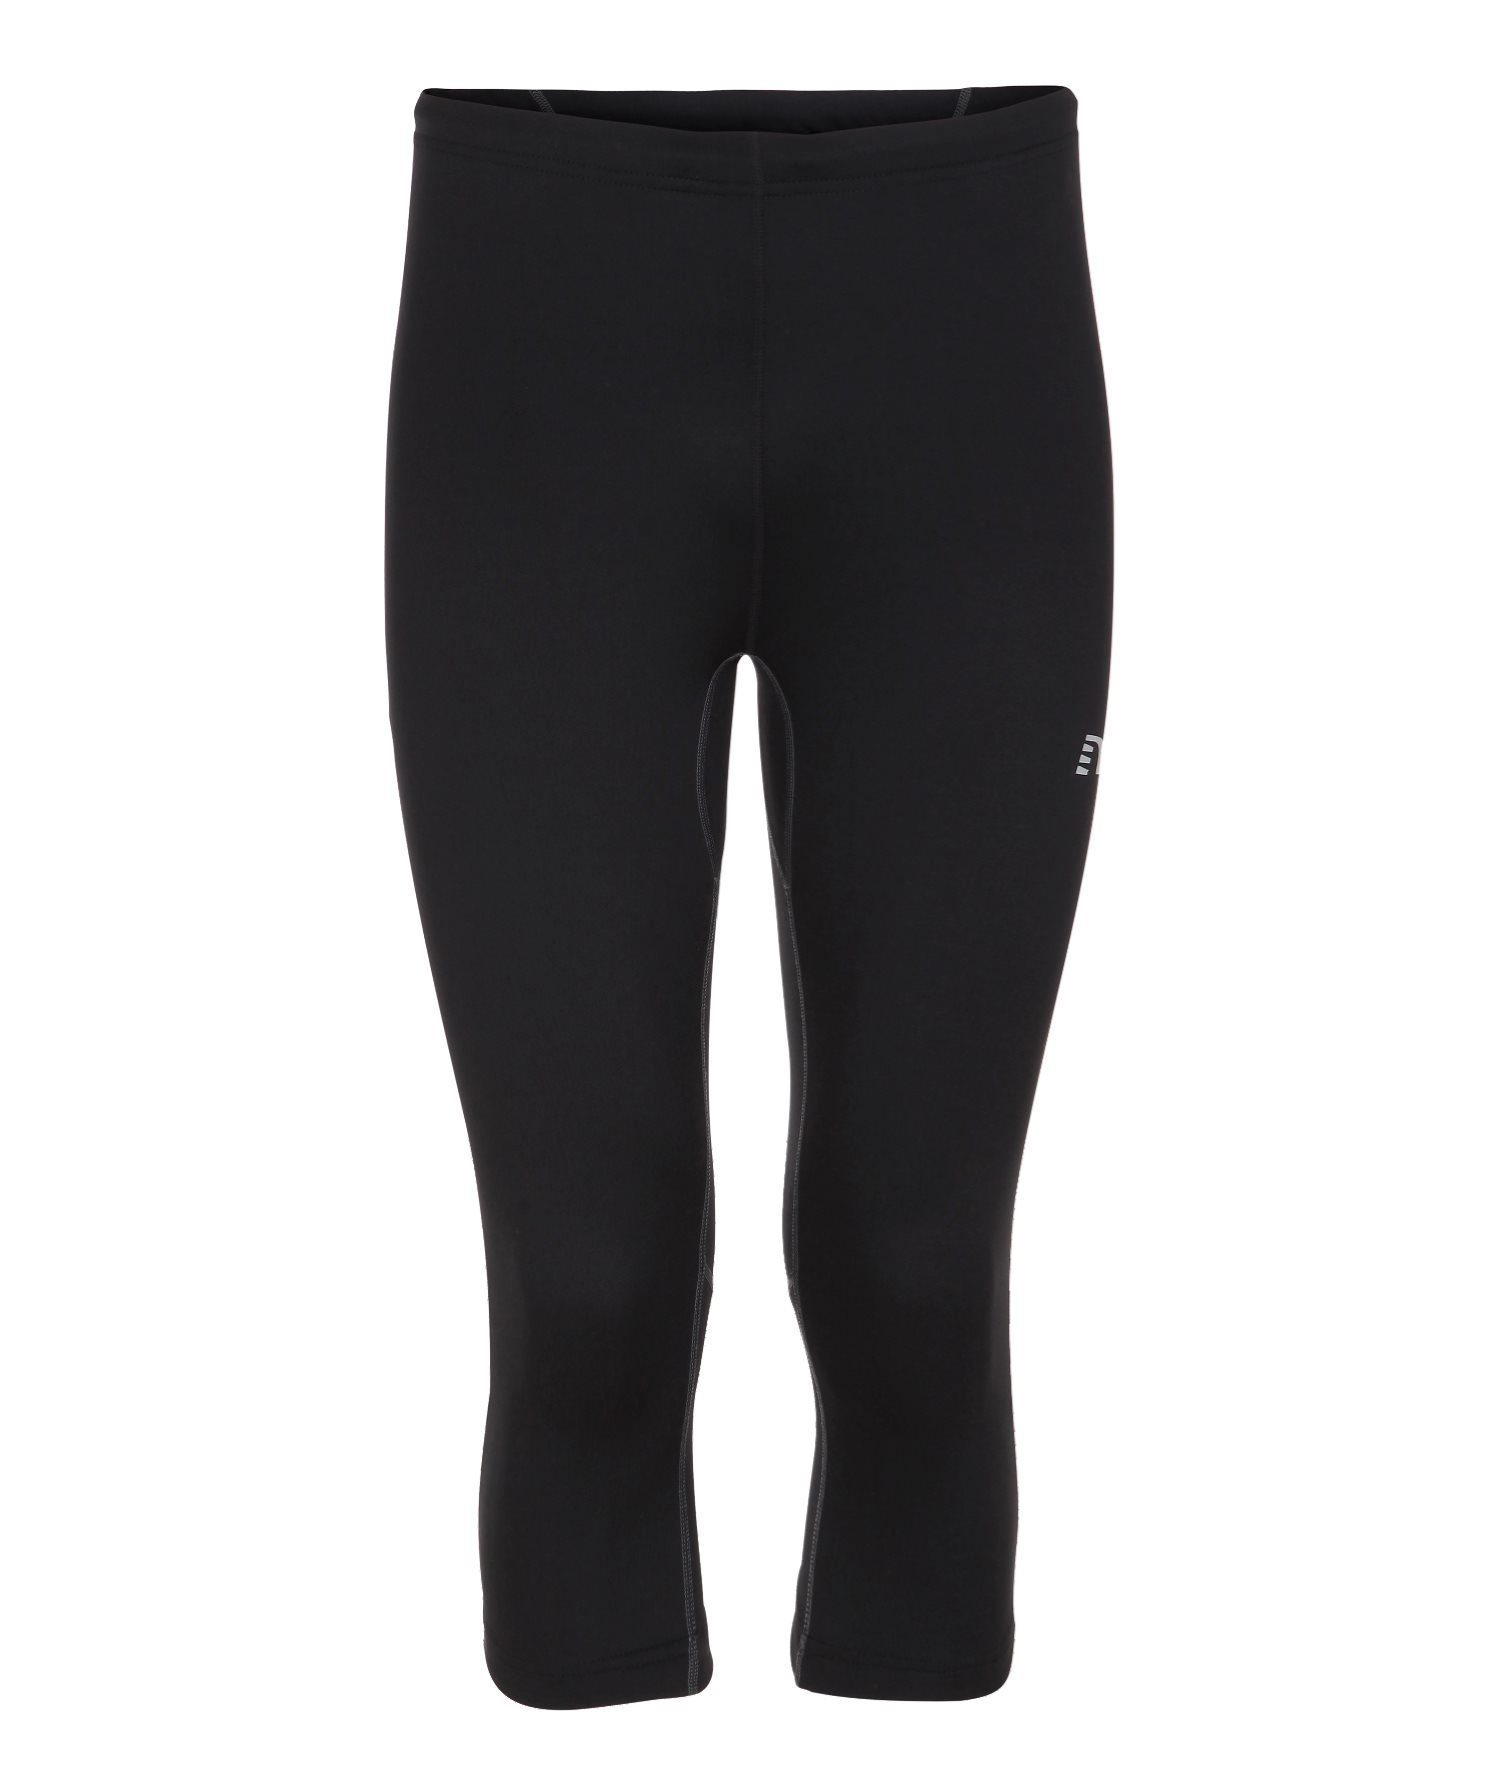 Base dry'n comfort Knee Tights Herren